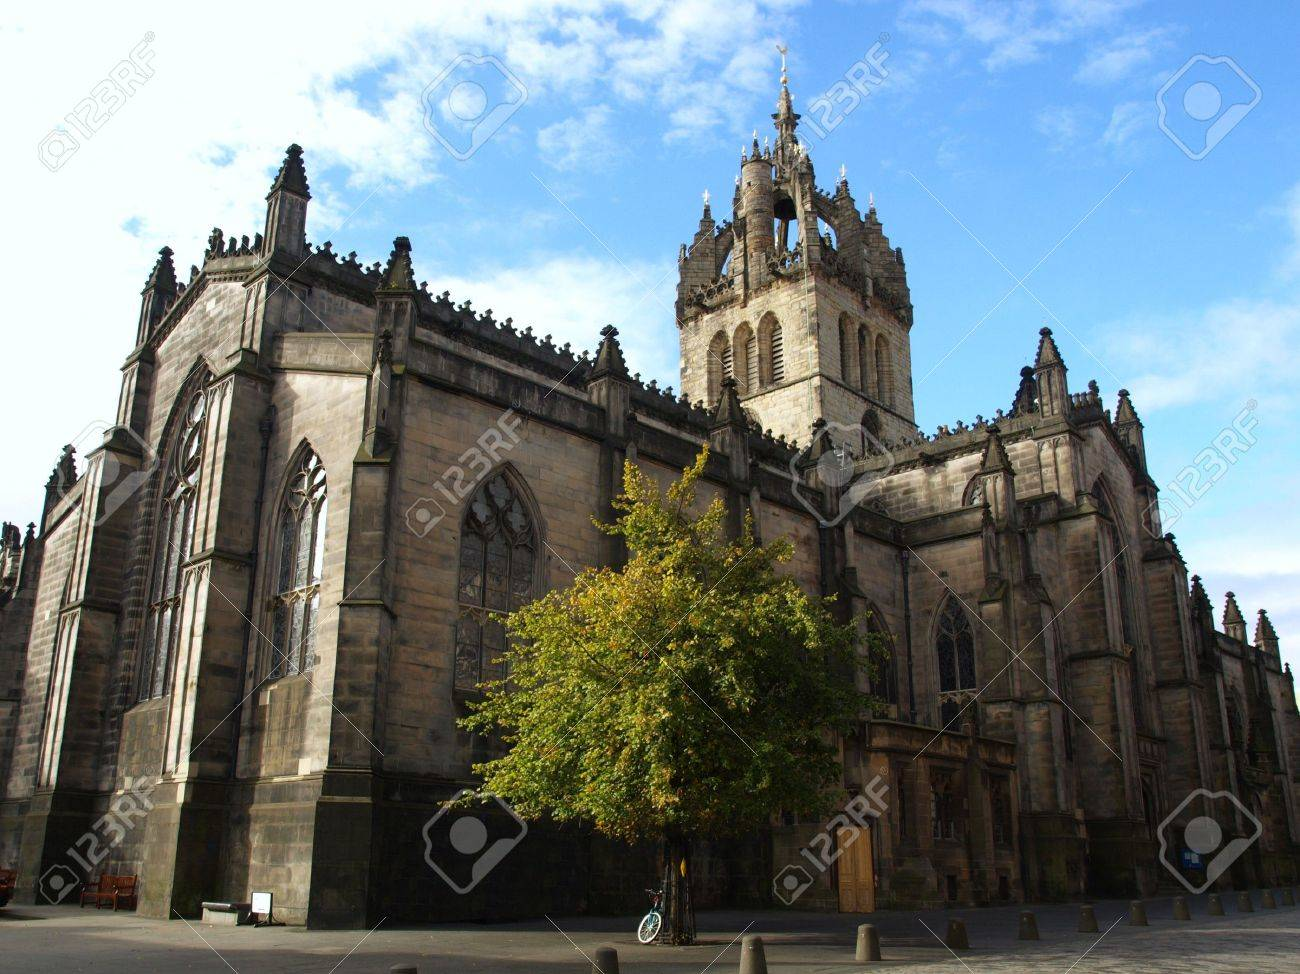 St Giles Cathedral in Edinburgh, Scotland, UK Stock Photo - 8011341